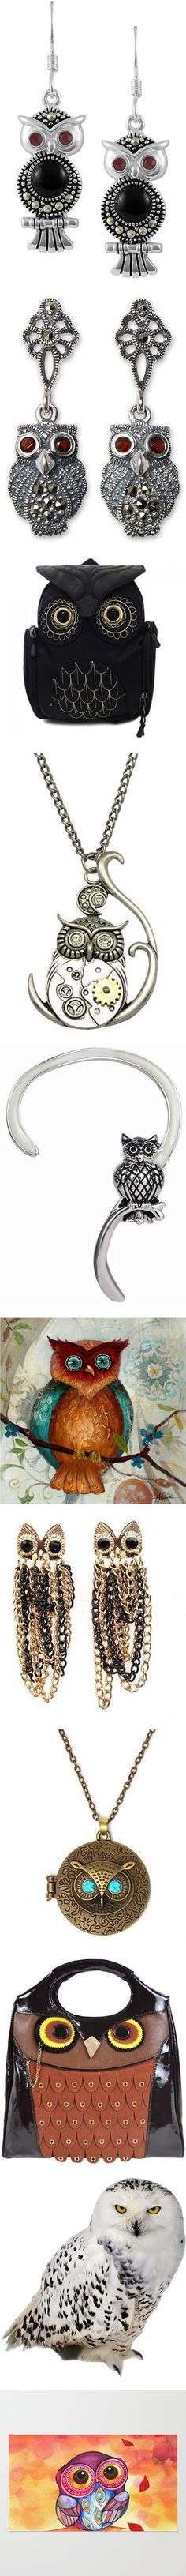 Owls by pampire on Polyvore featuring jewelry, earrings, bling, multi, sterling silver owl earrings, marcasite earrings, cocktail jewelry, sterling silver jewellery, owl jewelry and dangle